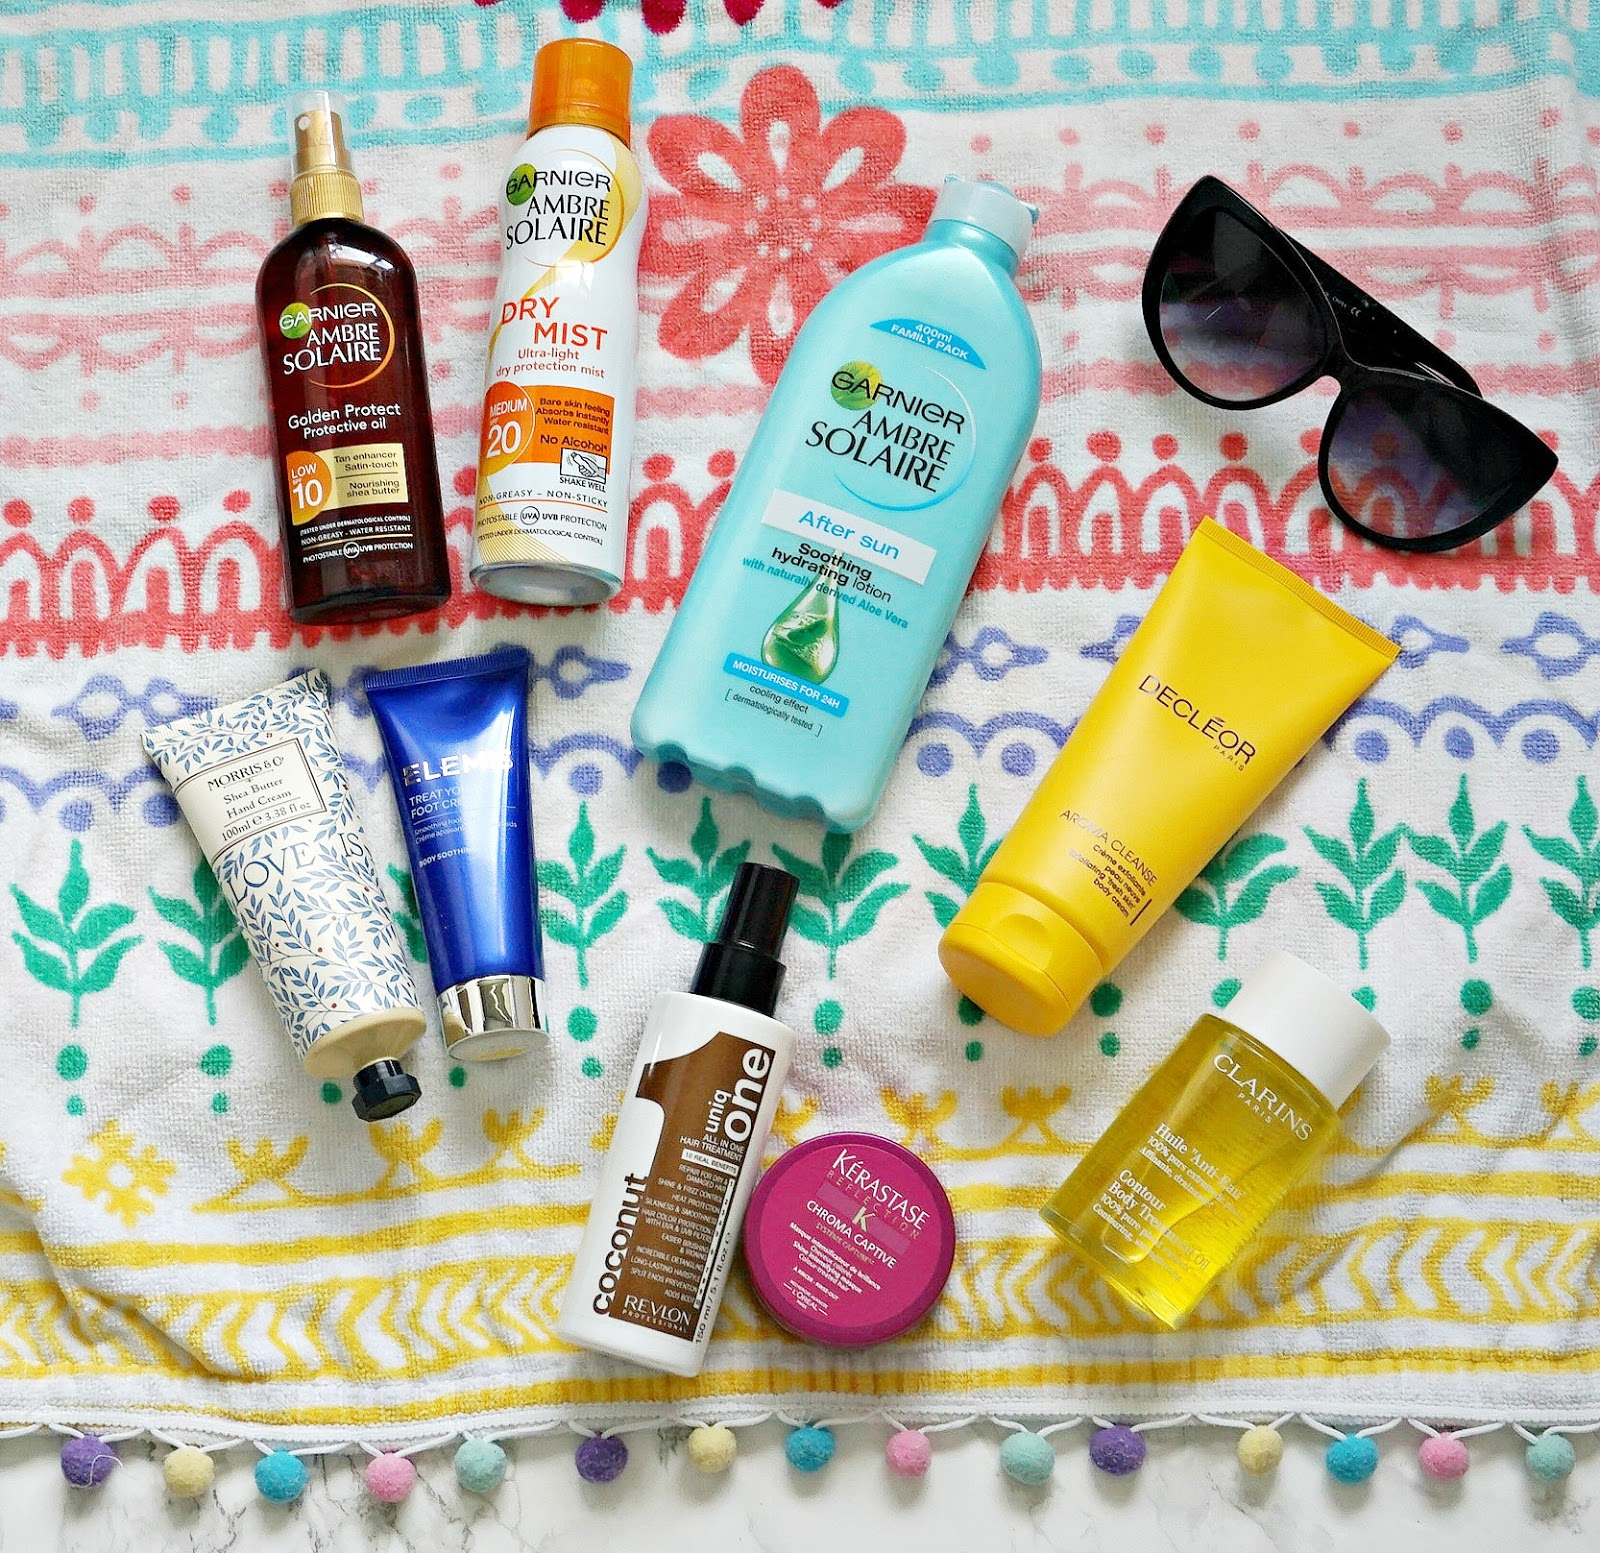 Ambre Solaire SPF, Elemis Foot Cream, Kérastase Chroma Captive Hair Mask, Uniq One 10 in 1 Hair Treatment, Clarins Contour Body Oil, Ambre Solaire Aftersun, Decleor Aroma Cleanse, Review, Sun holiday essentials, Fragrance Direct